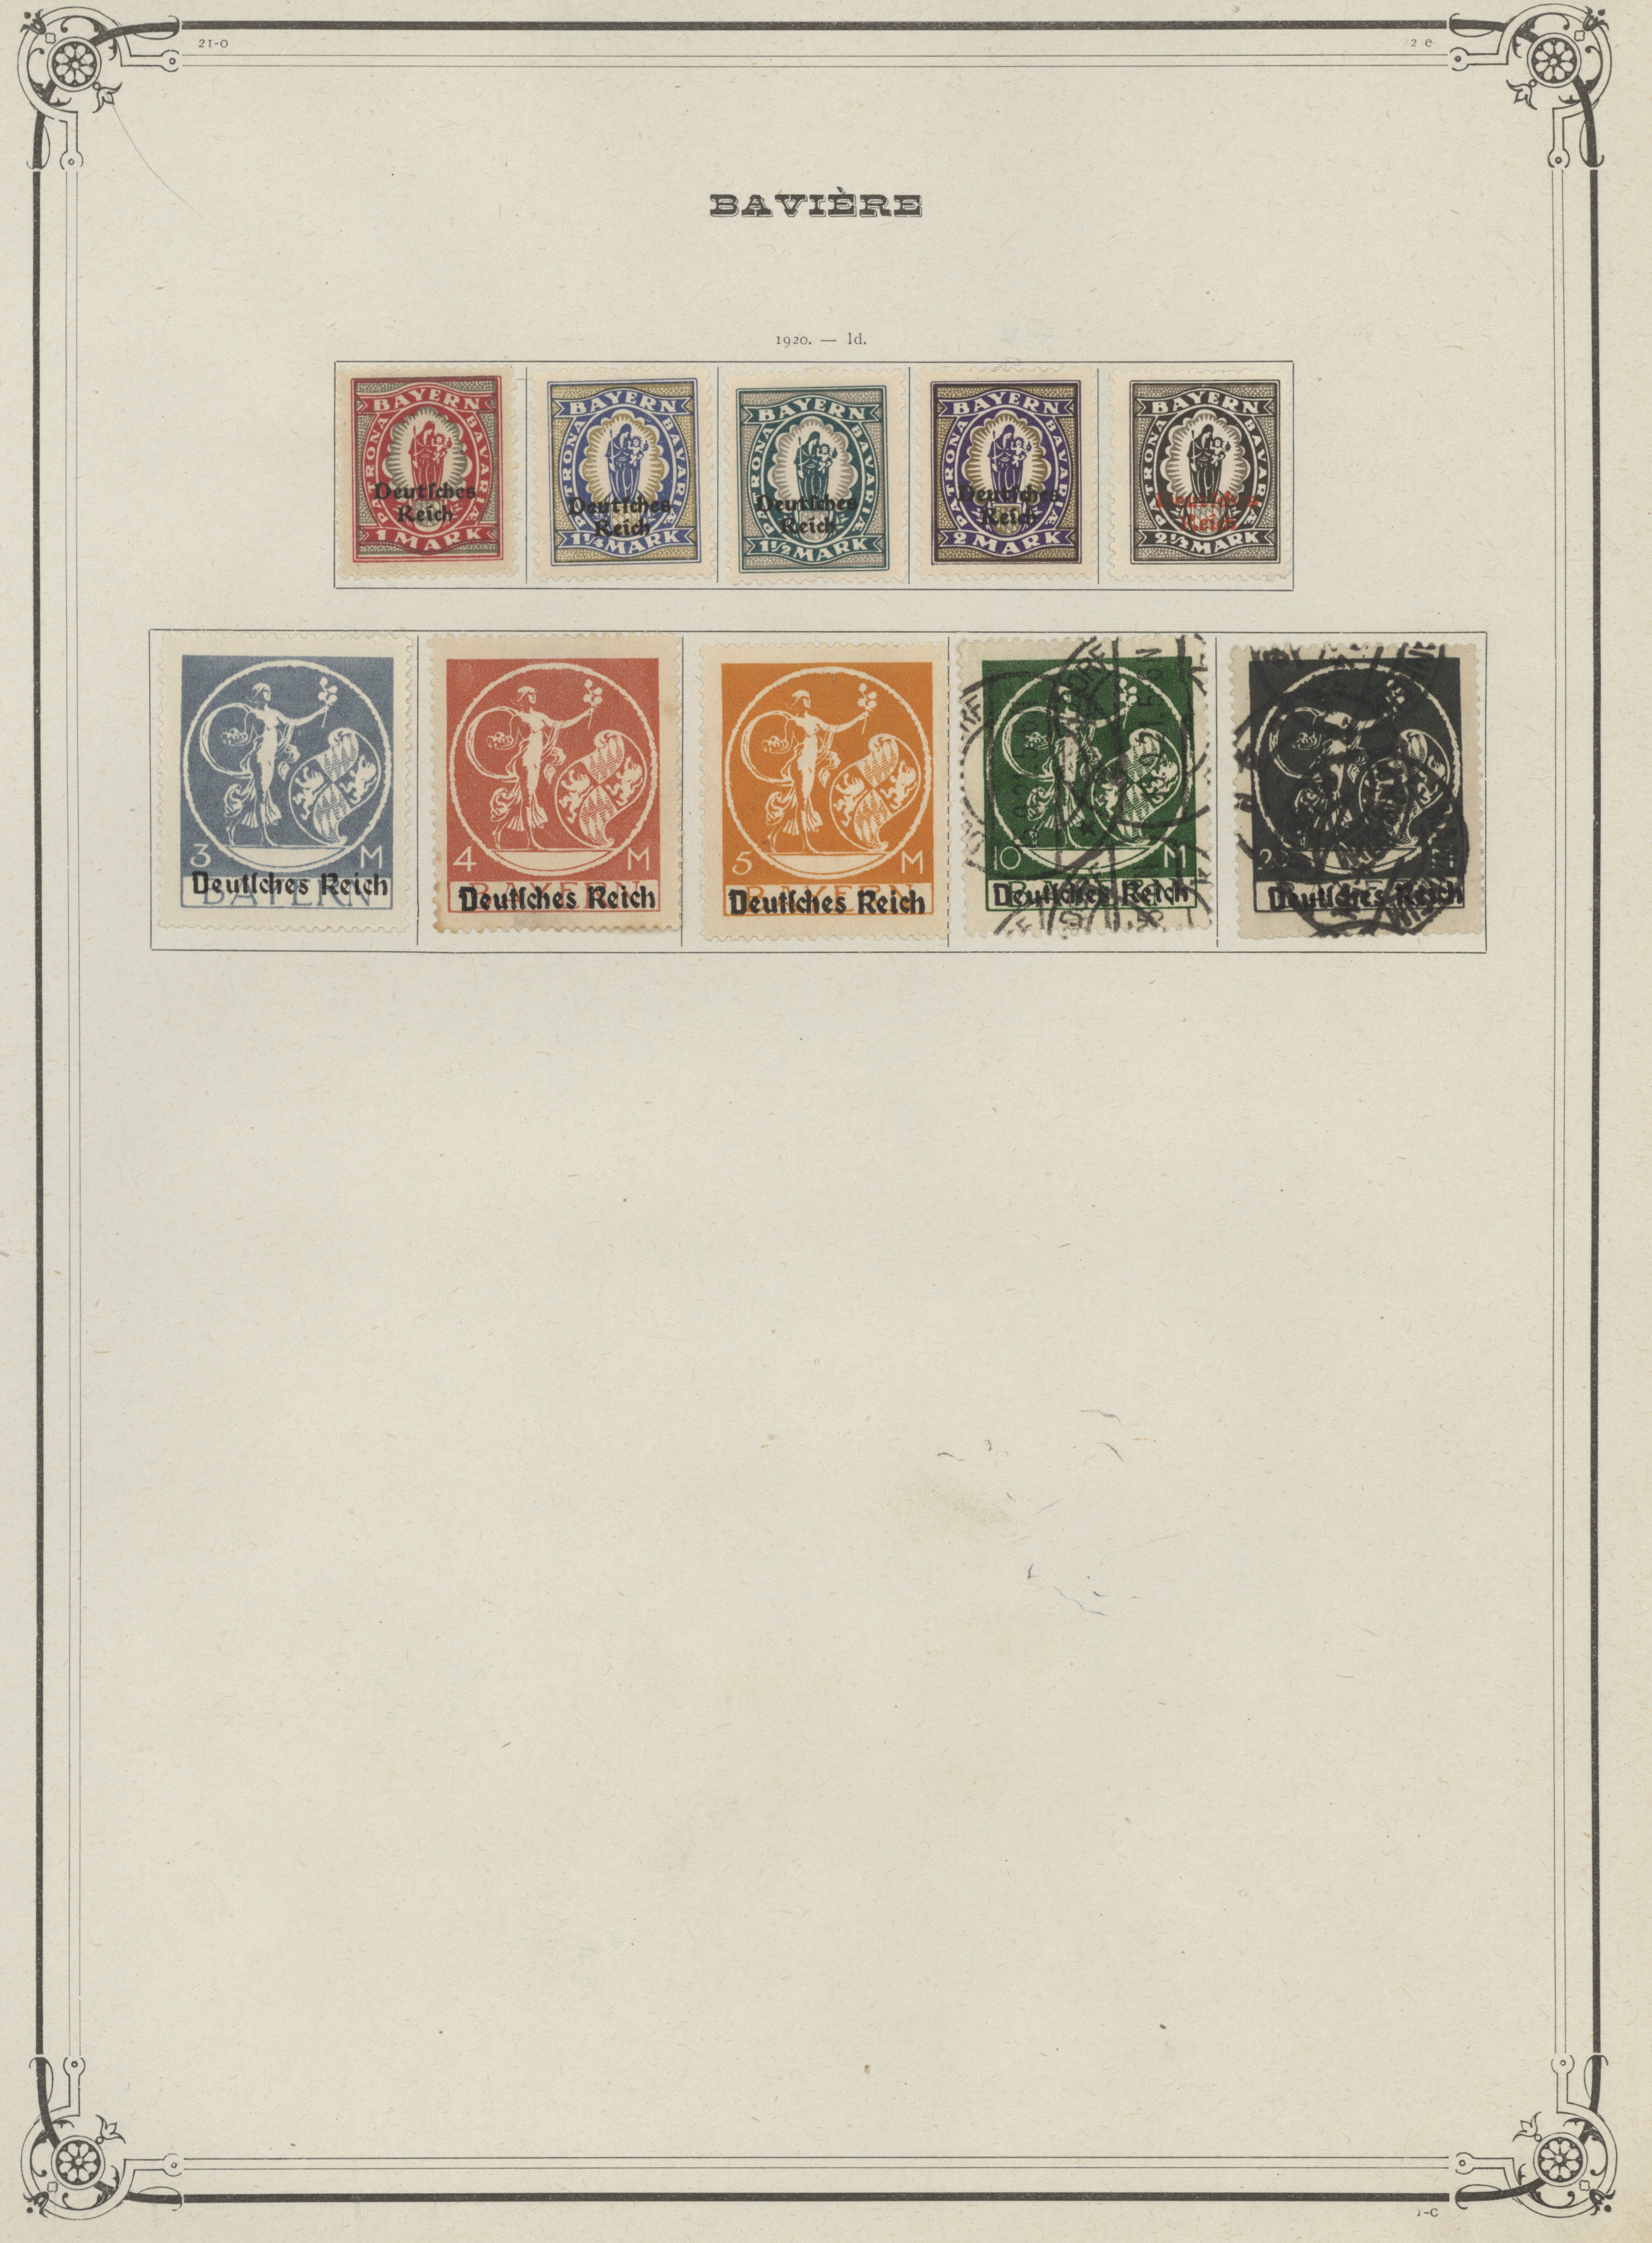 Lot 31193 - Bayern - Marken und Briefe  -  Auktionshaus Christoph Gärtner GmbH & Co. KG Auction #40 Collections Germany, Wunderkartons